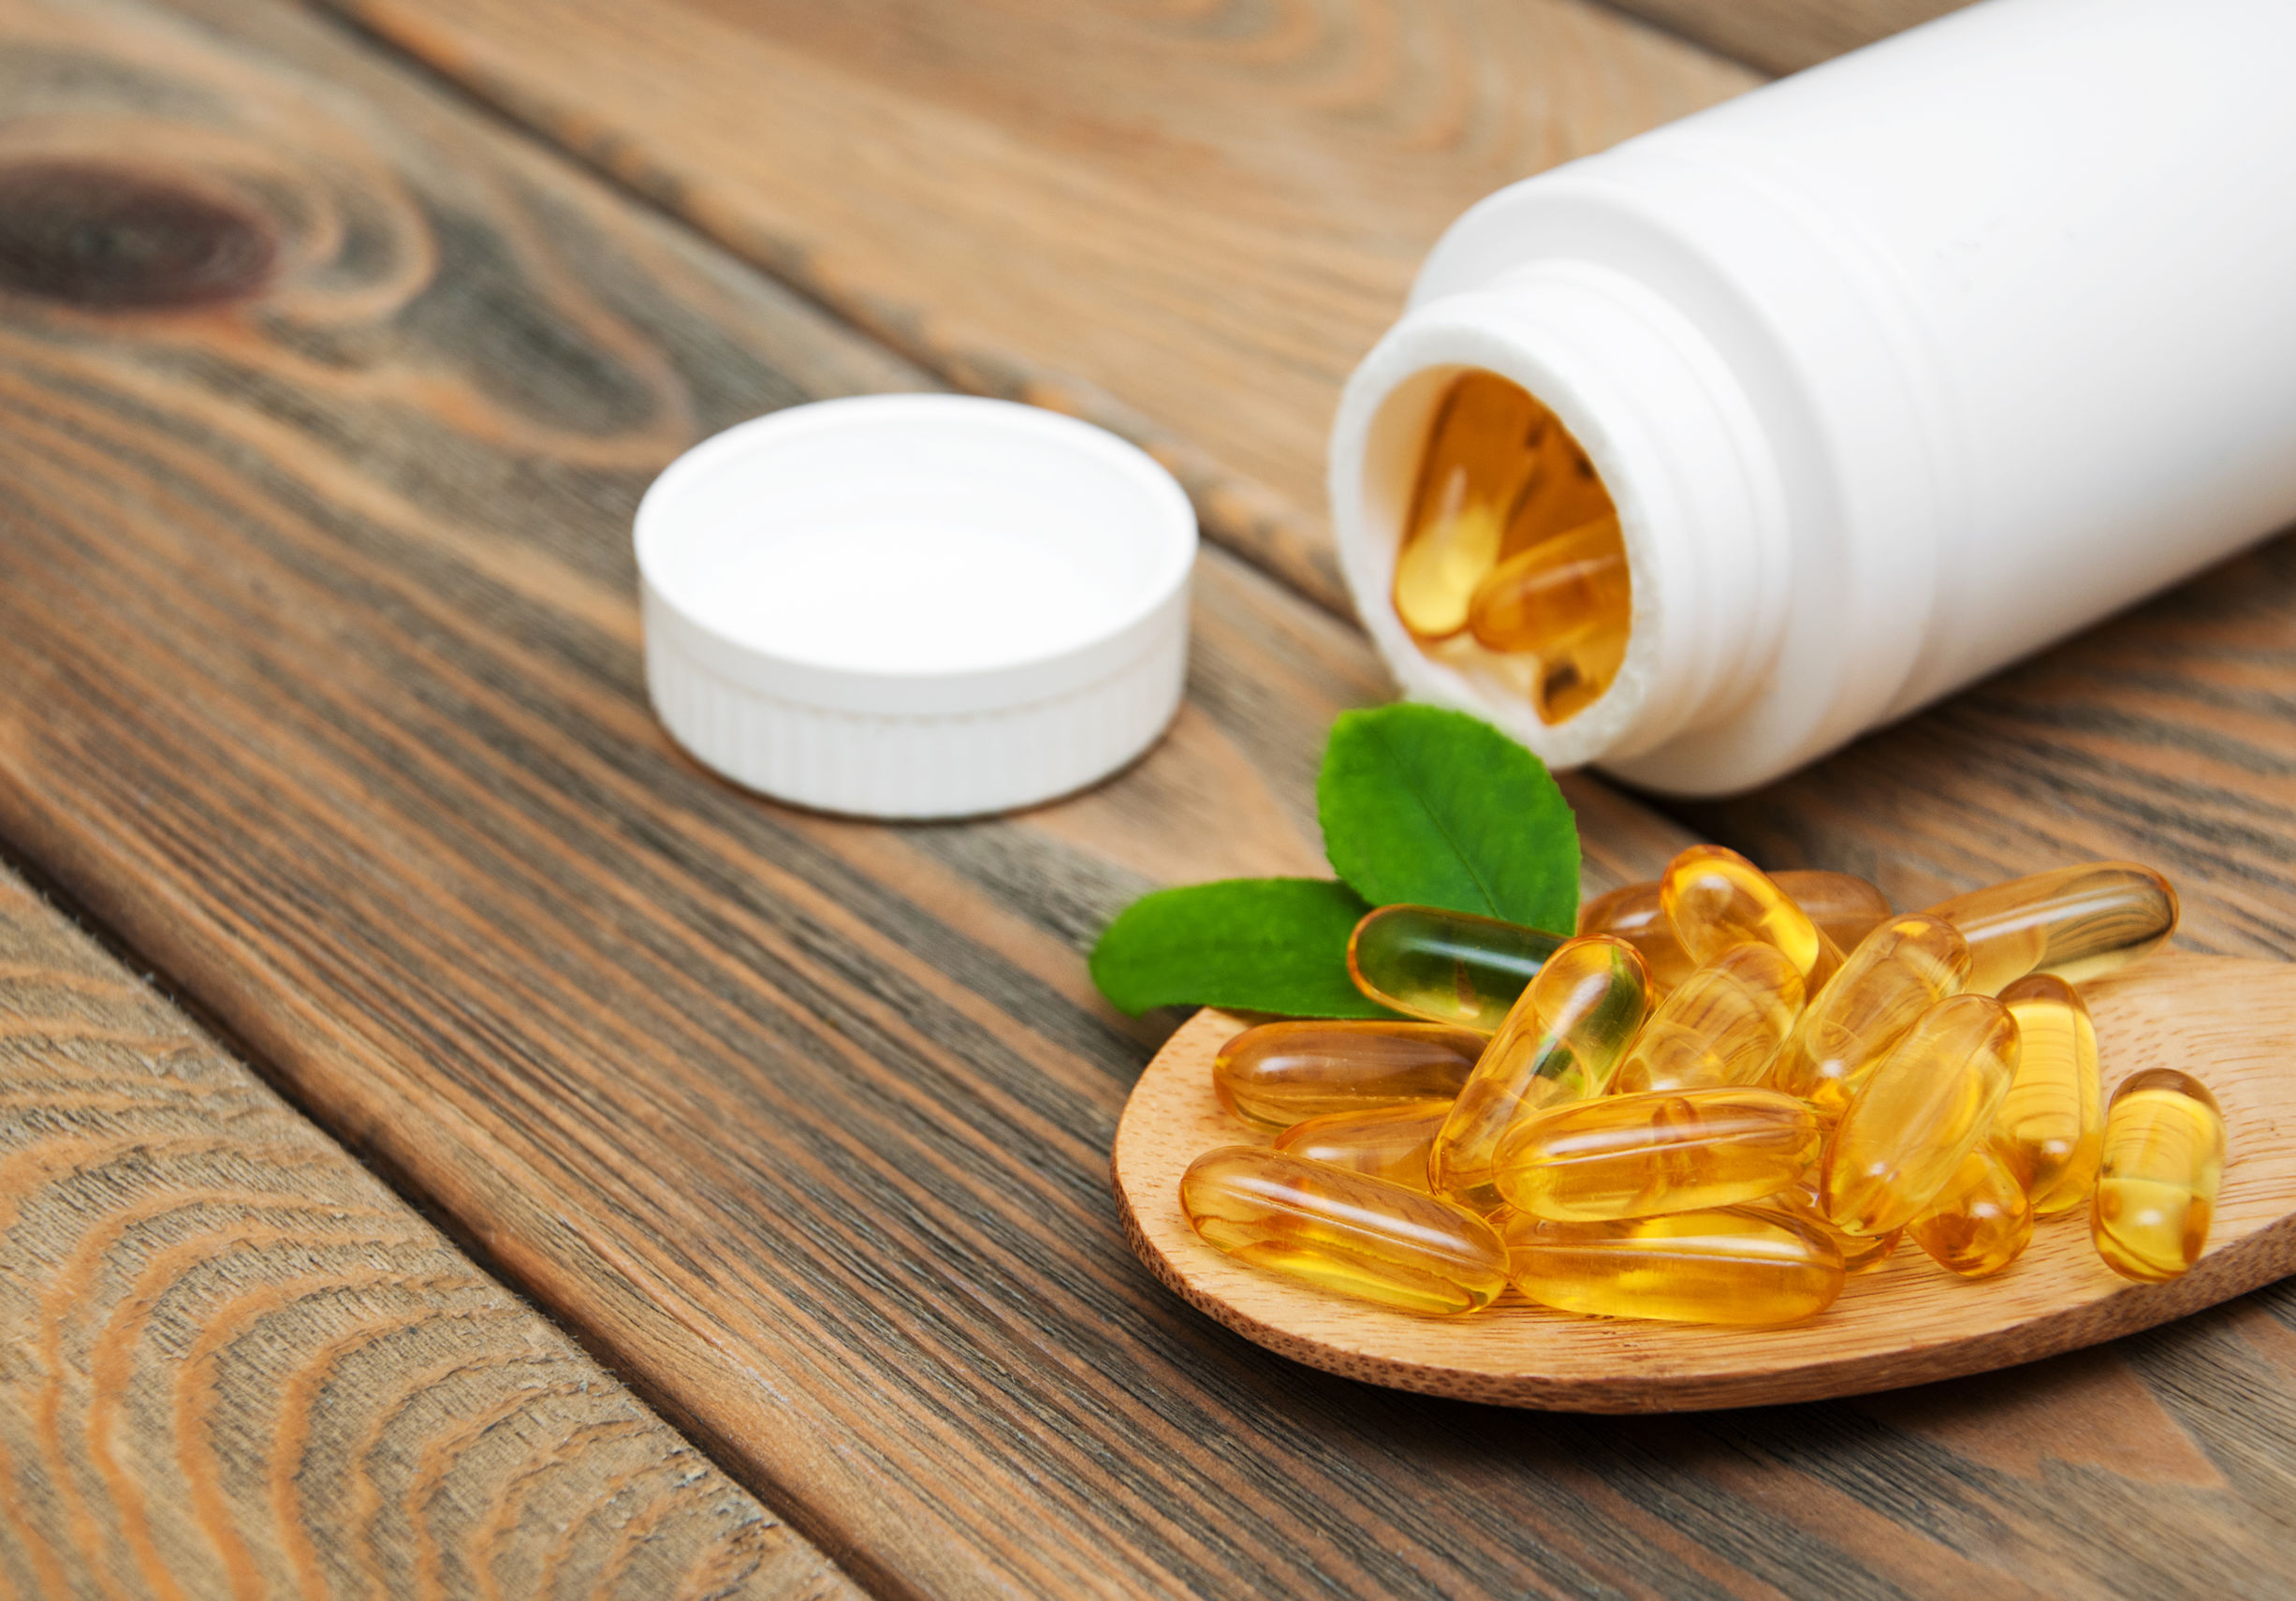 Best Vitamin D3 Supplement 2020: Shopping Guide & Review